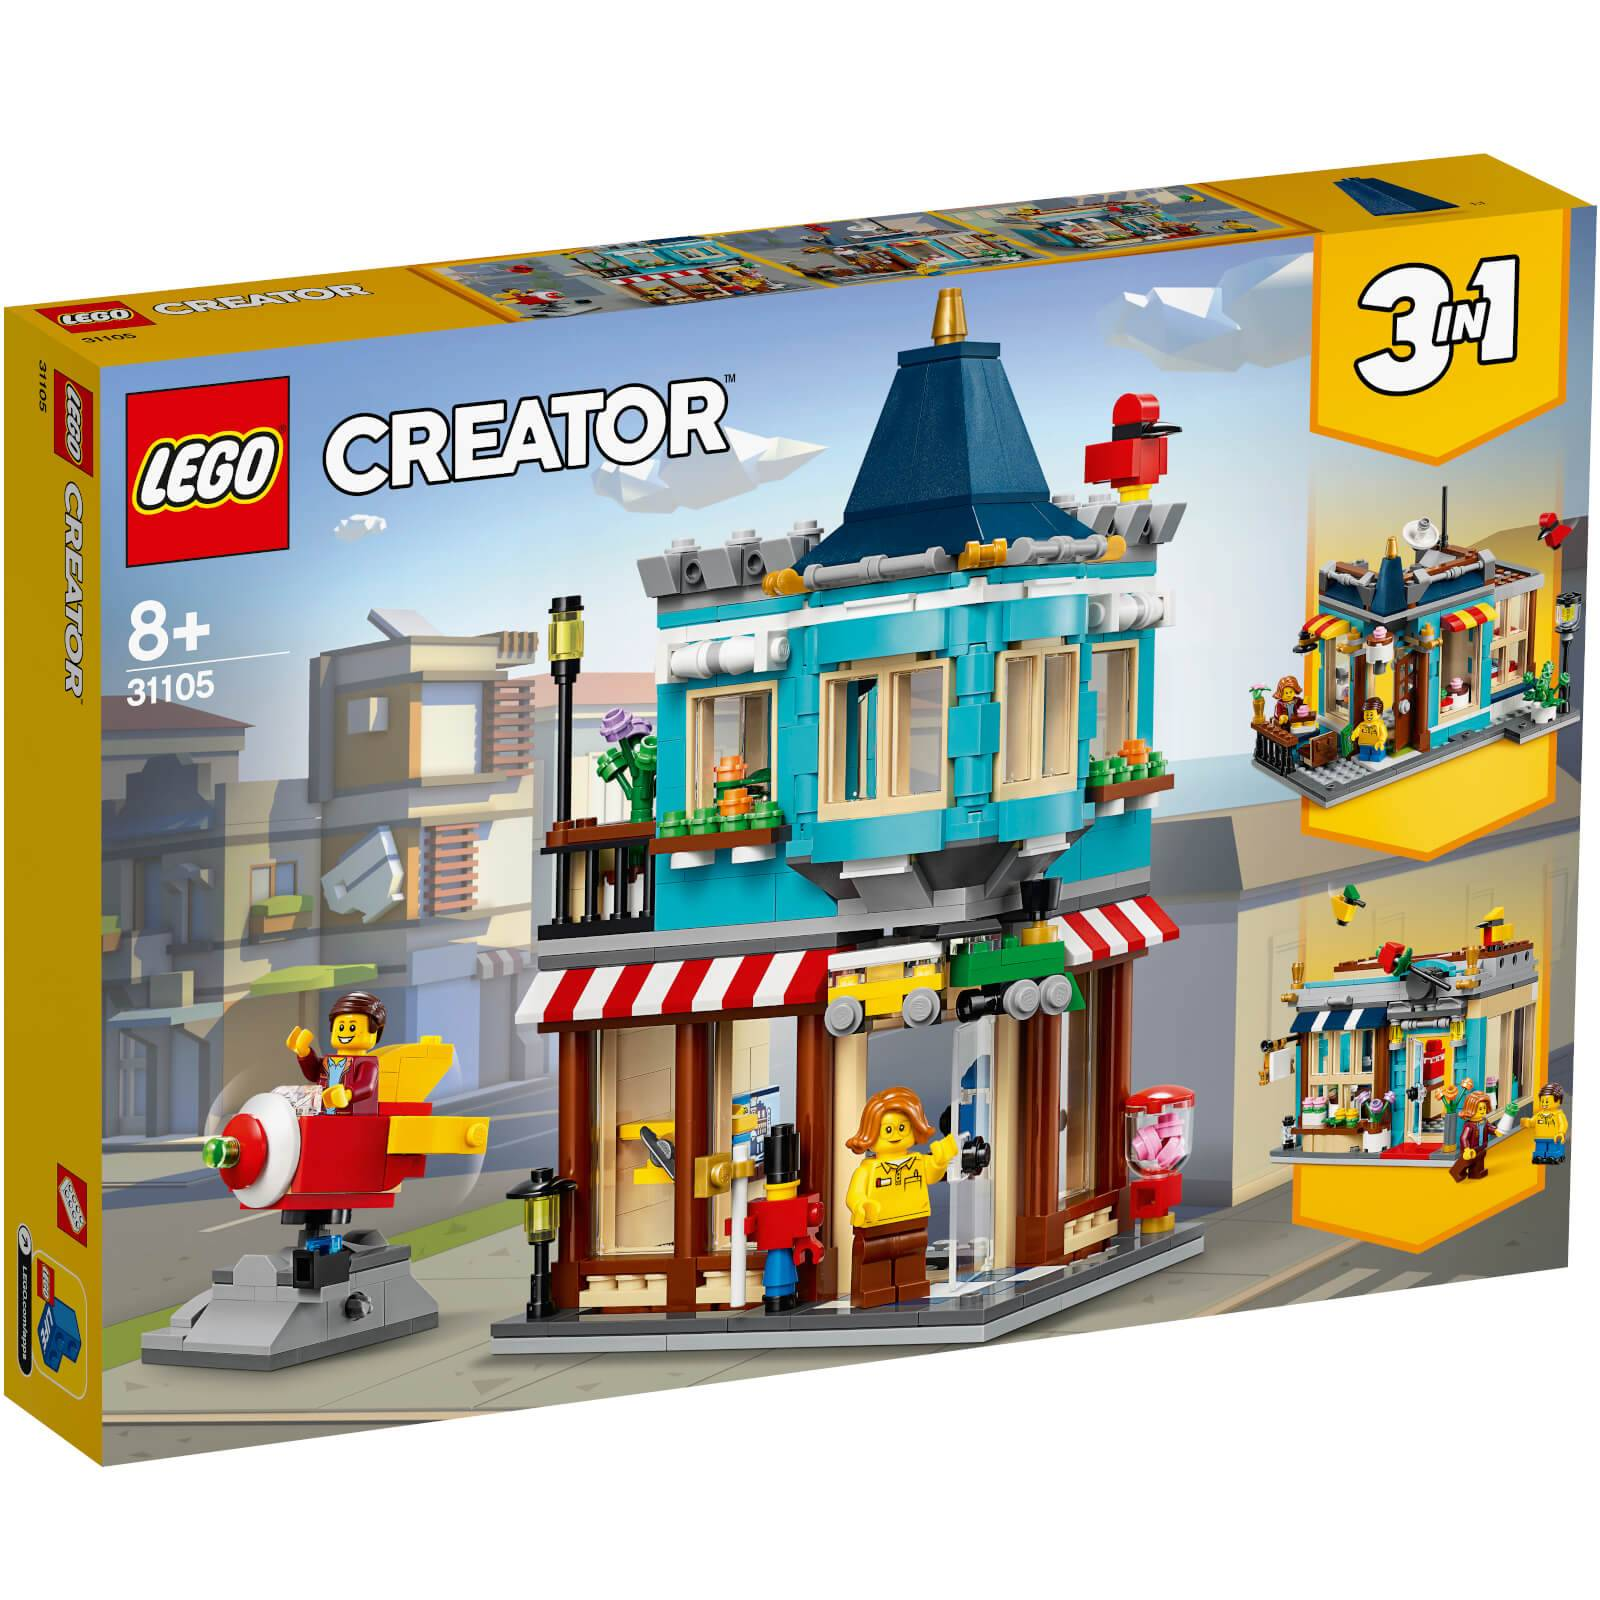 Lego Creator: Townhouse Toy Store (31105)